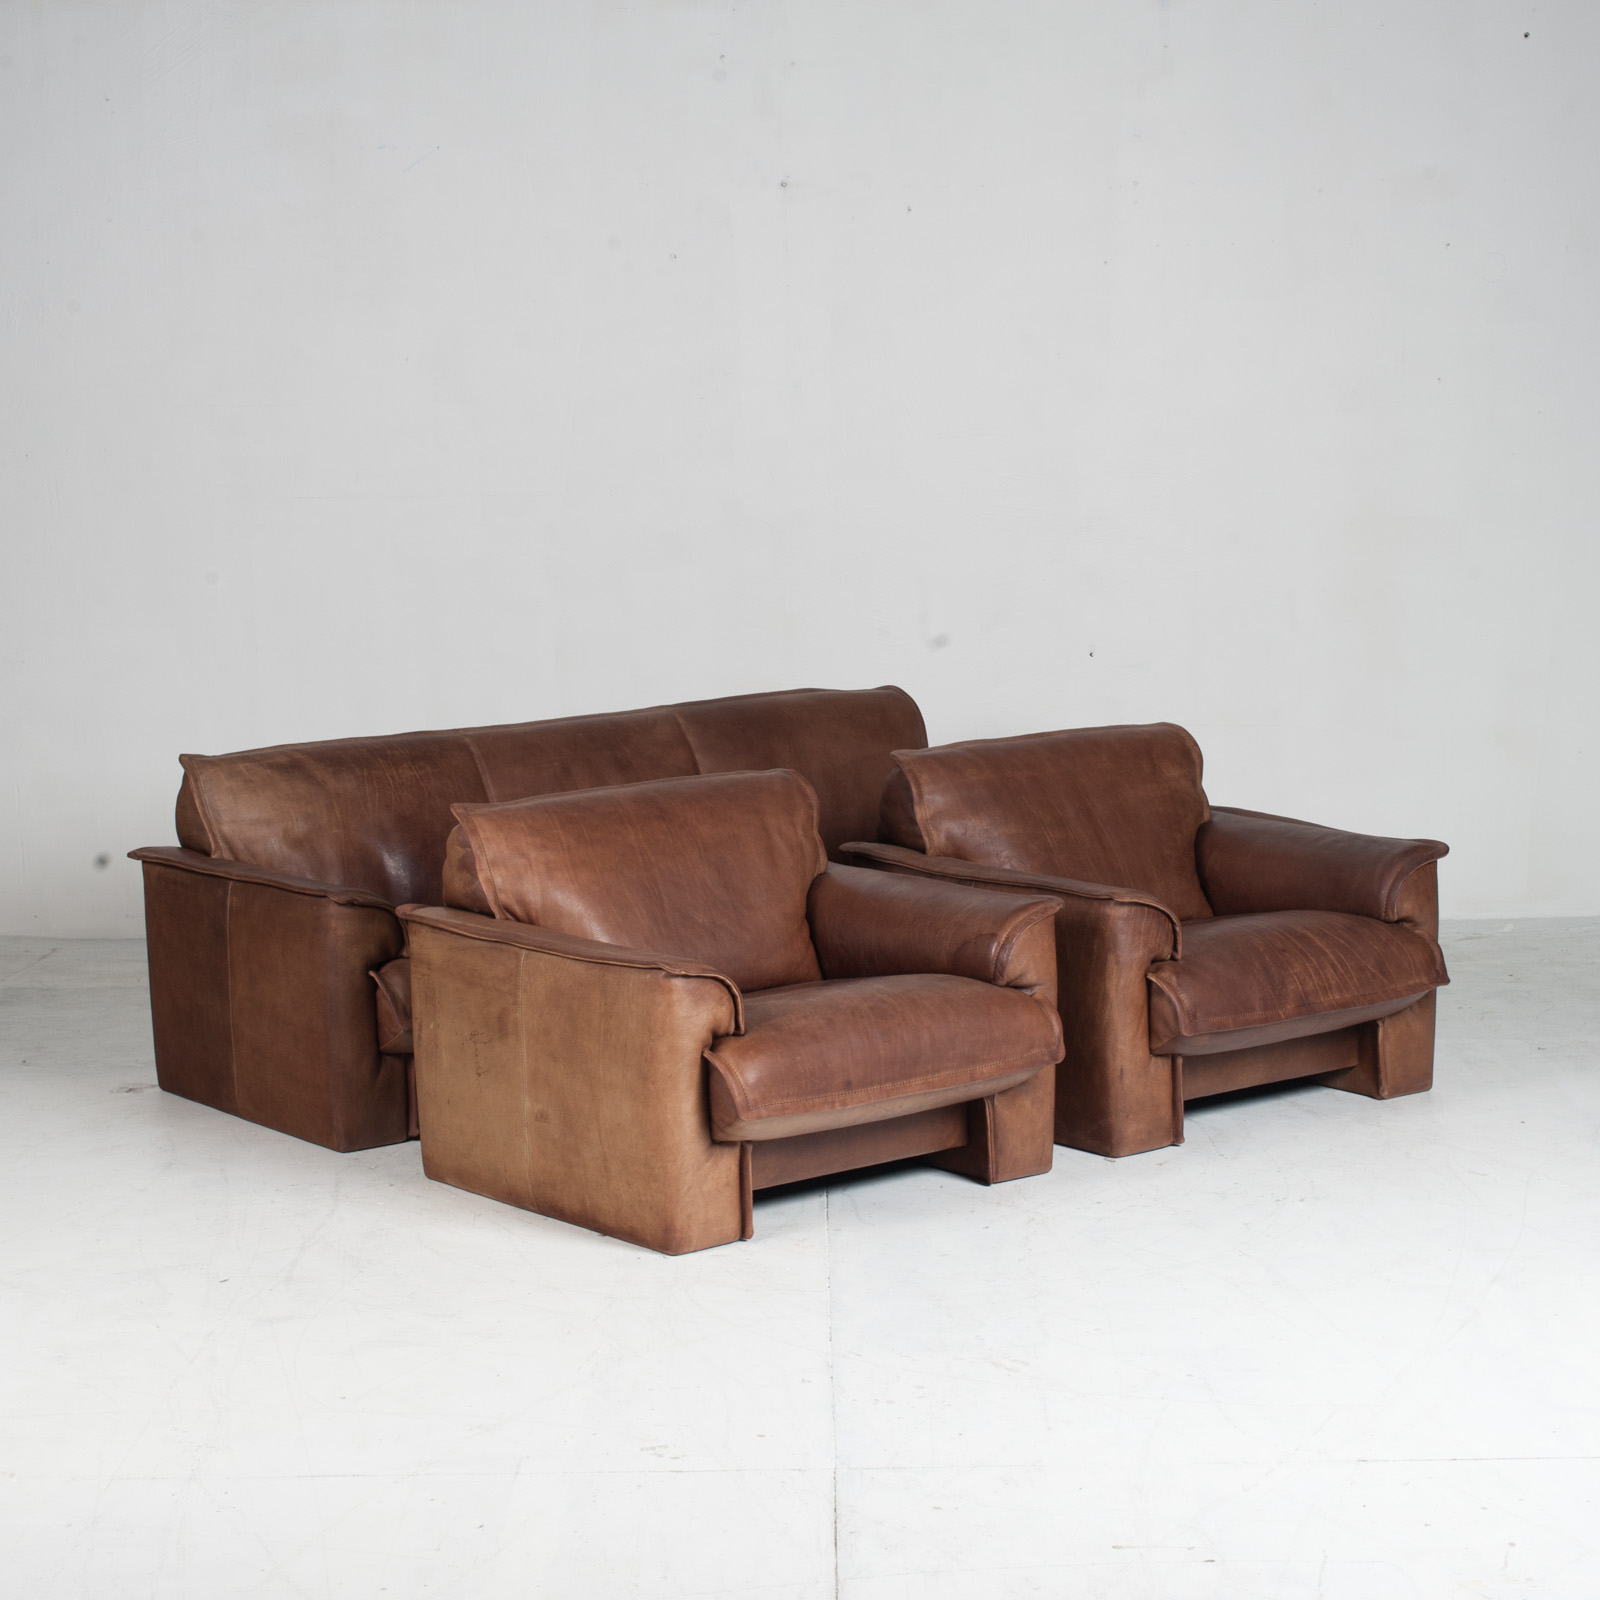 3 Seat Sofa By De Sede In Tan Neck Leather 1960s Denmark 020